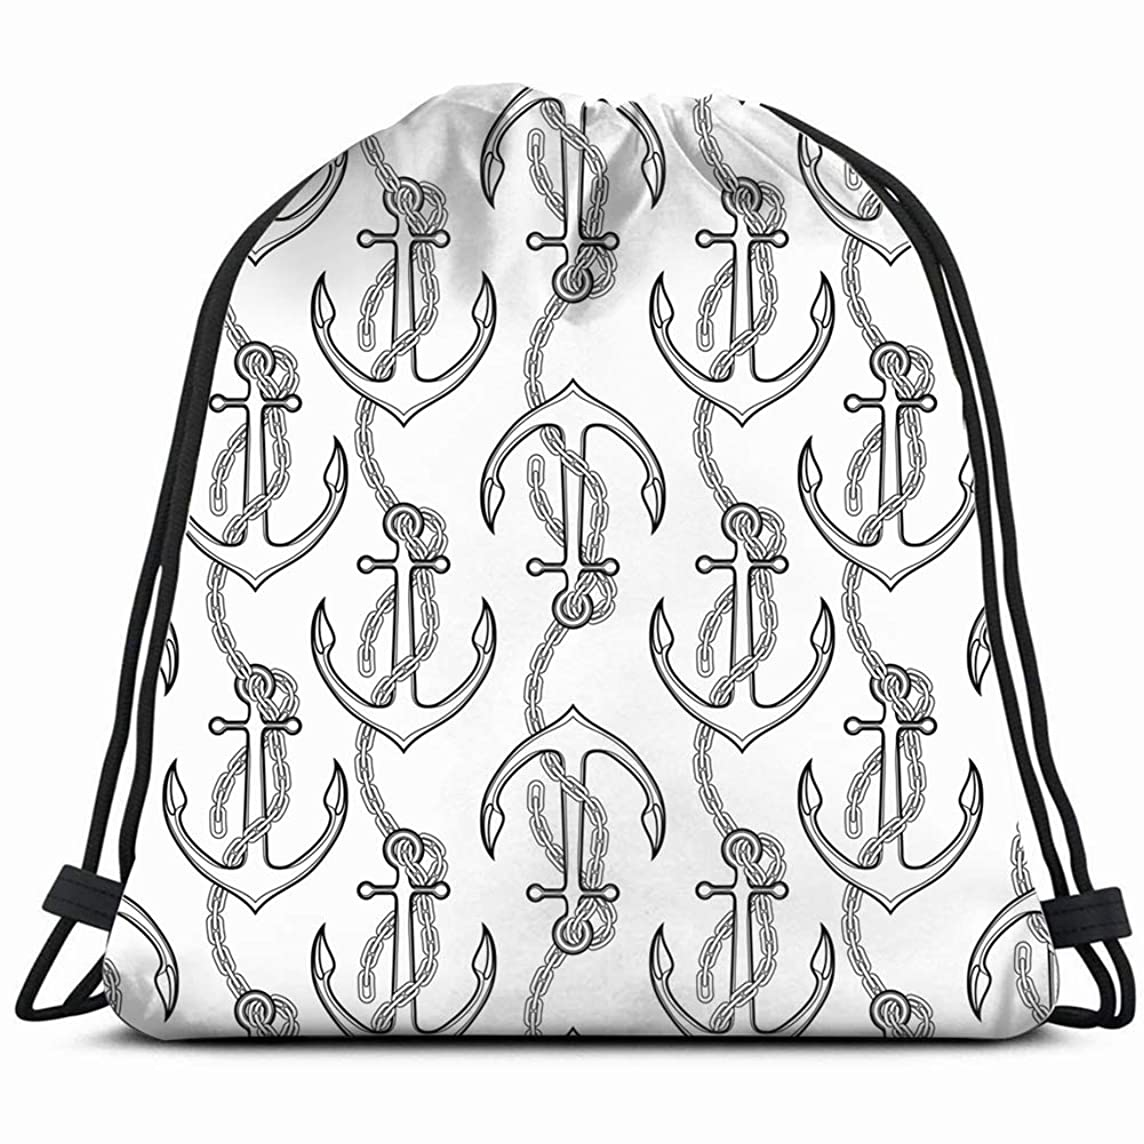 anchor drawn line art style marine objects Drawstring Backpack Gym Sack Lightweight Bag Water Resistant Gym Backpack for Women&Men for Sports,Travelling,Hiking,Camping,Shopping Yoga